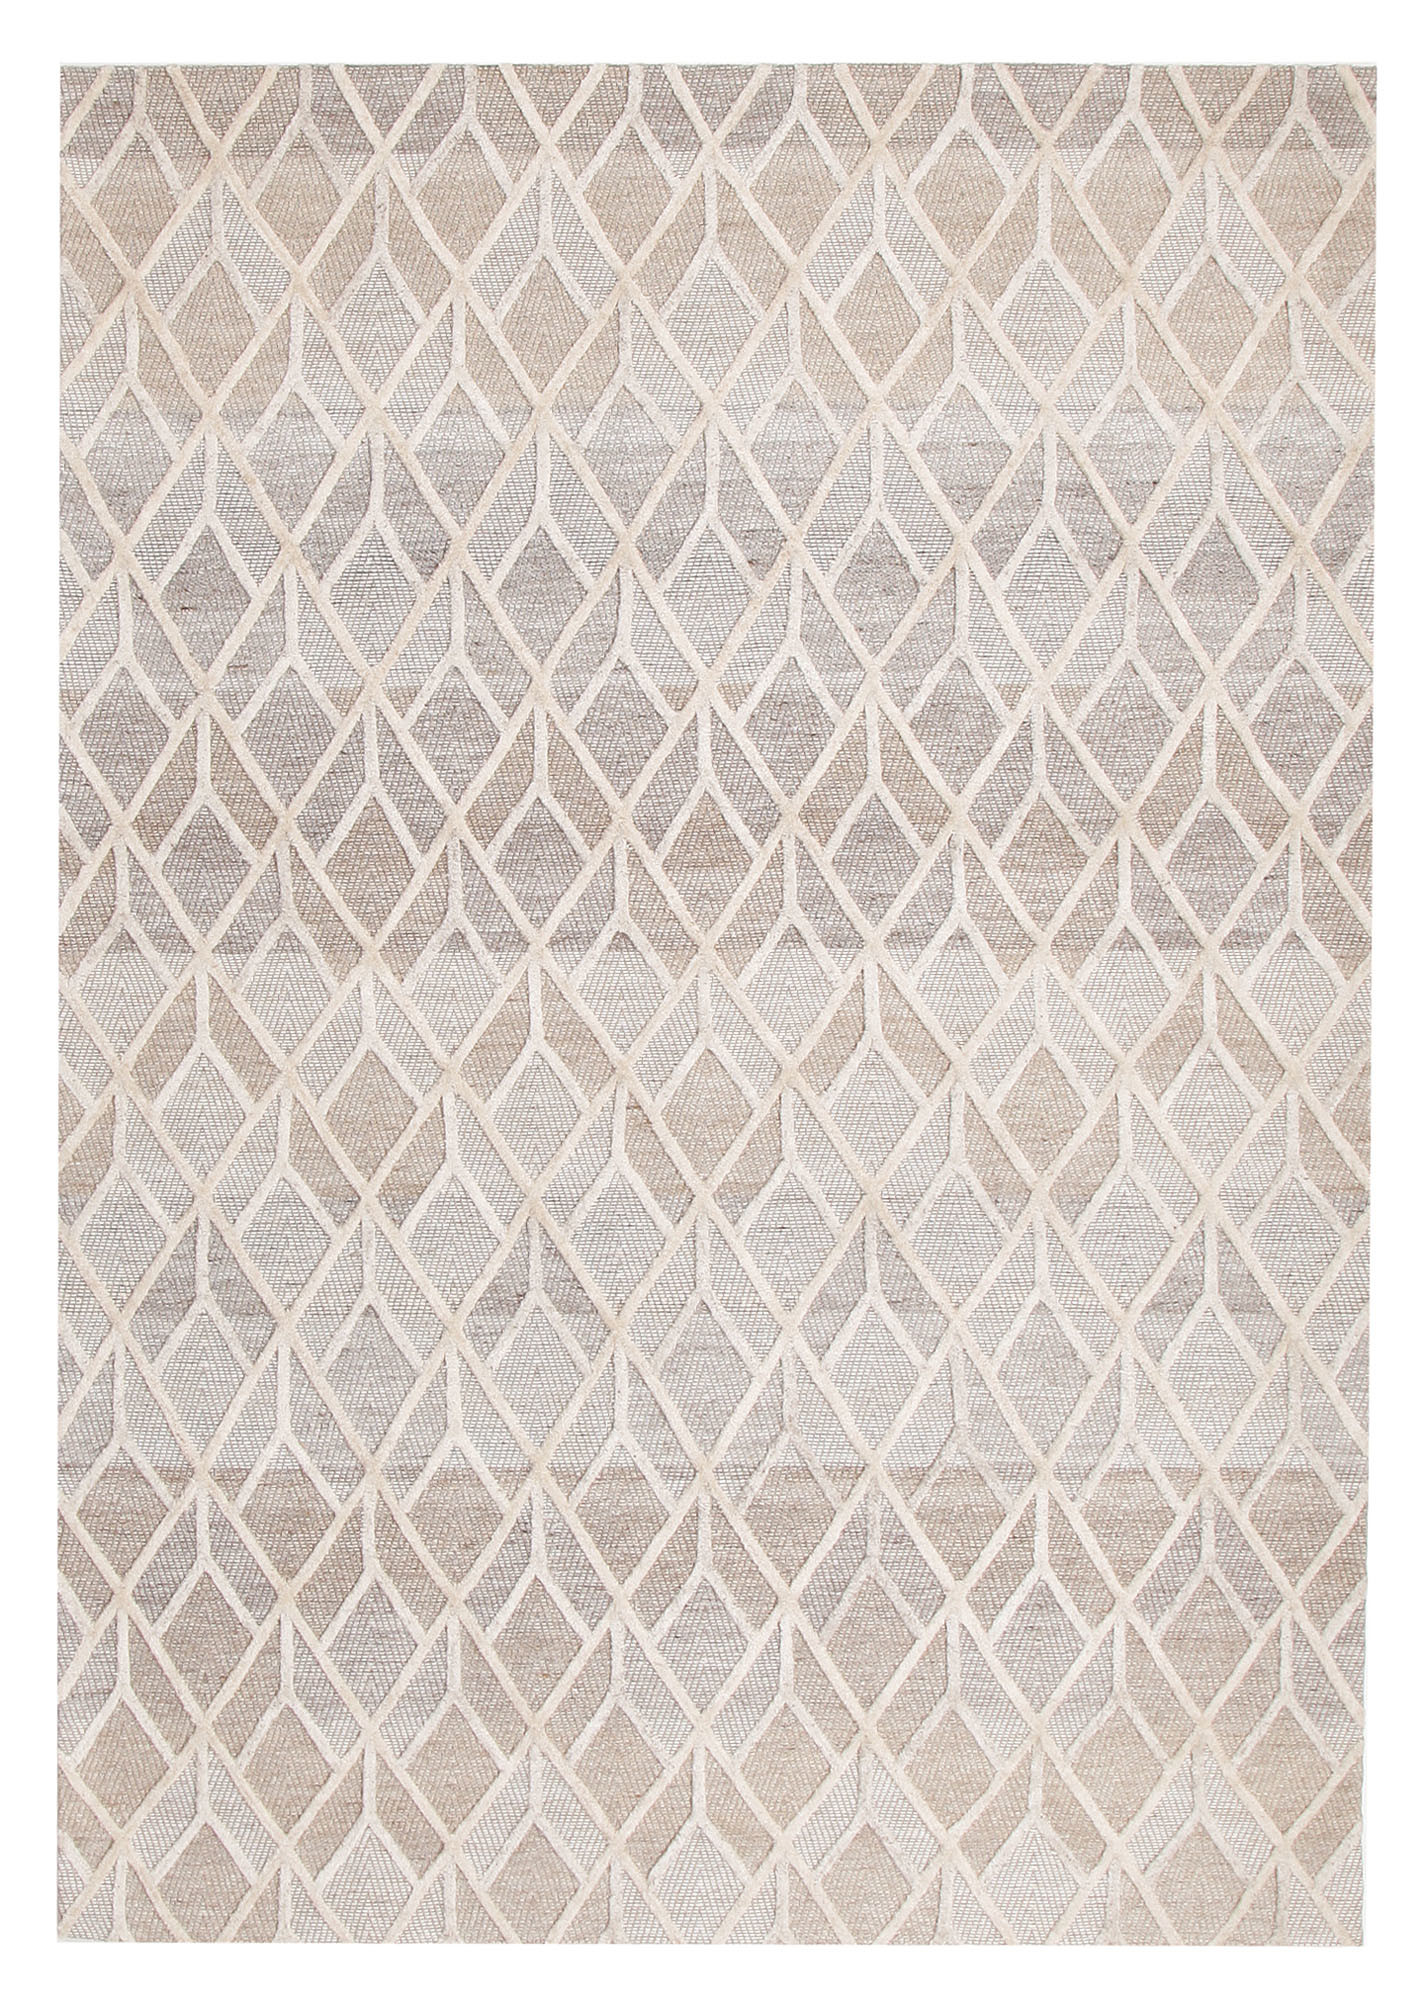 rugs casul area rug abstract lo product catalog modern contemporary